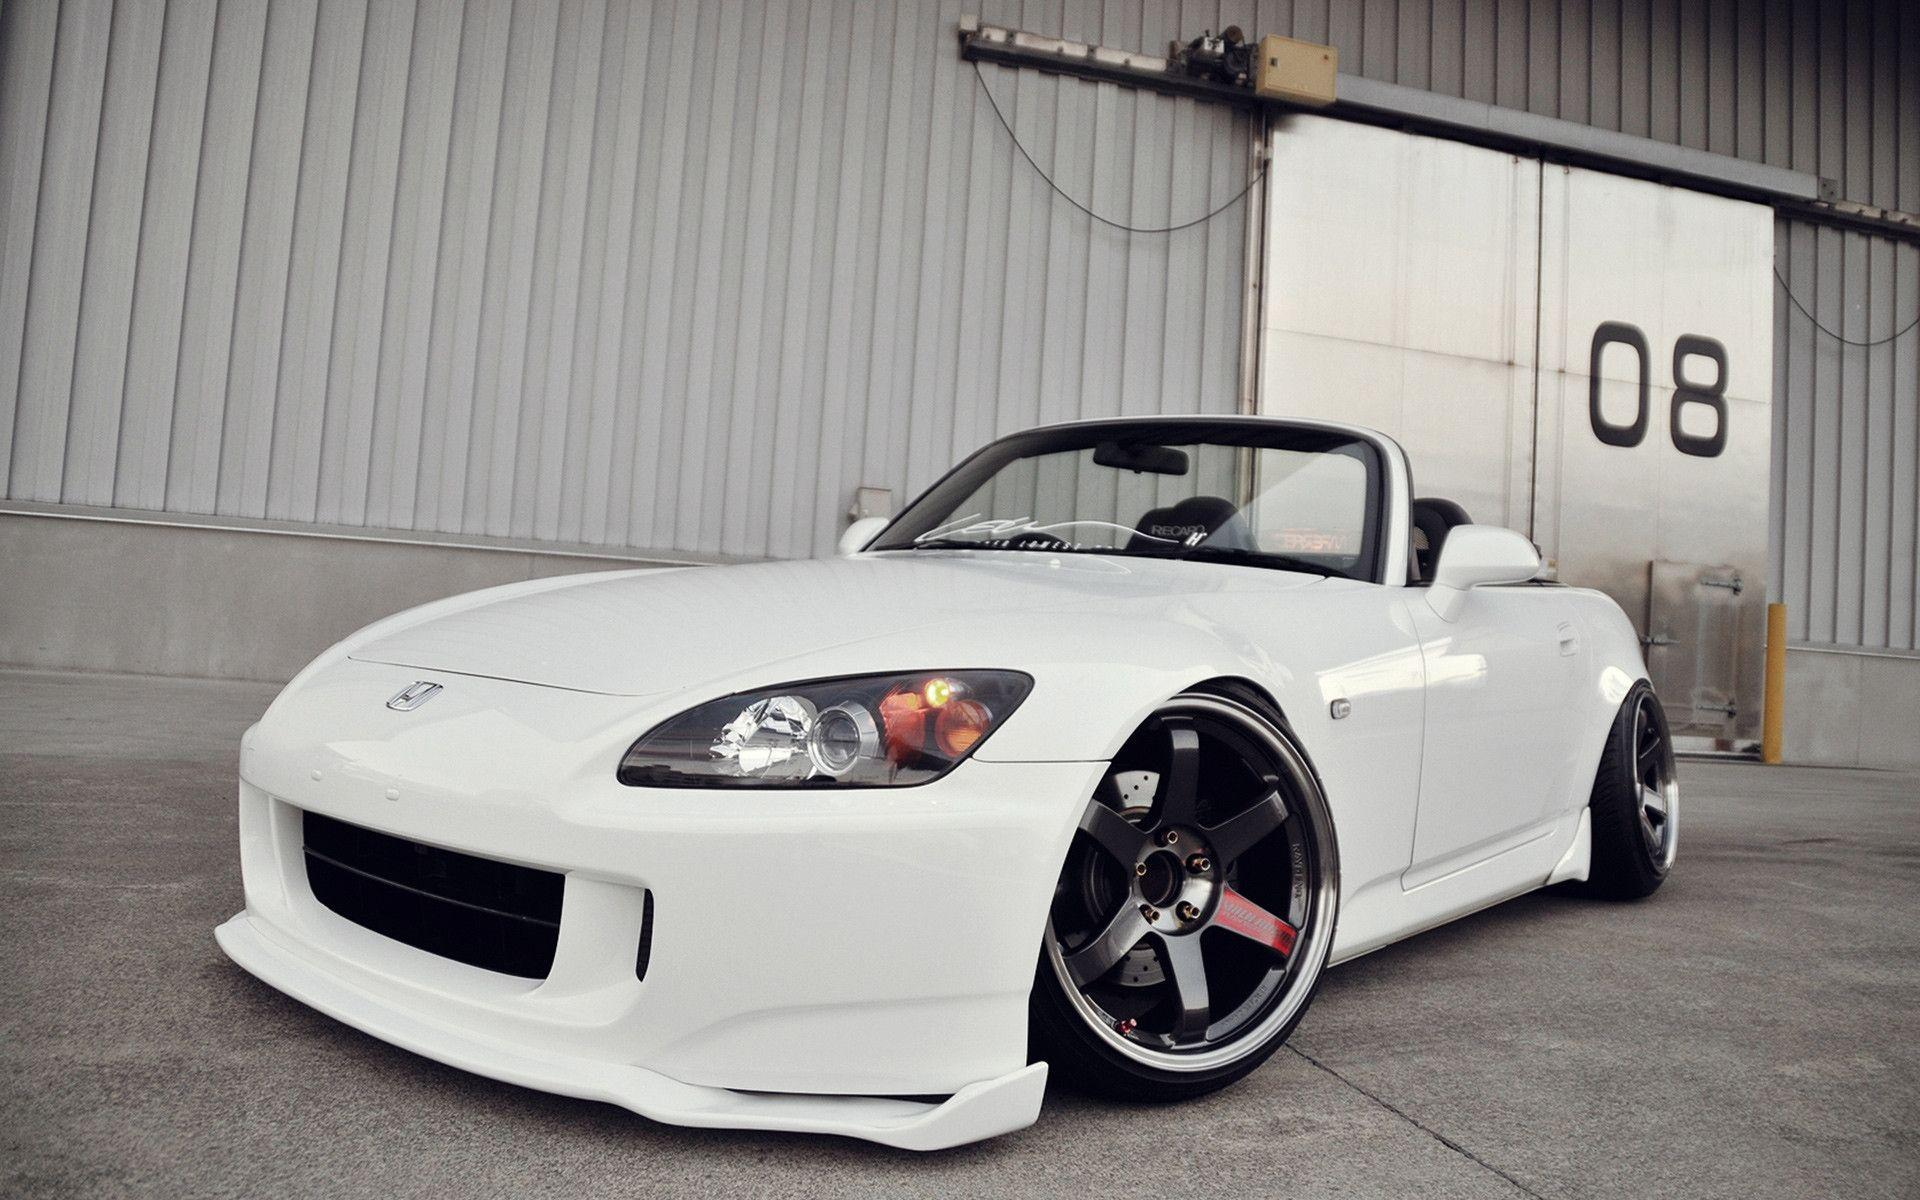 Honda S2000 Japan S2K Stance HD Wallpapers